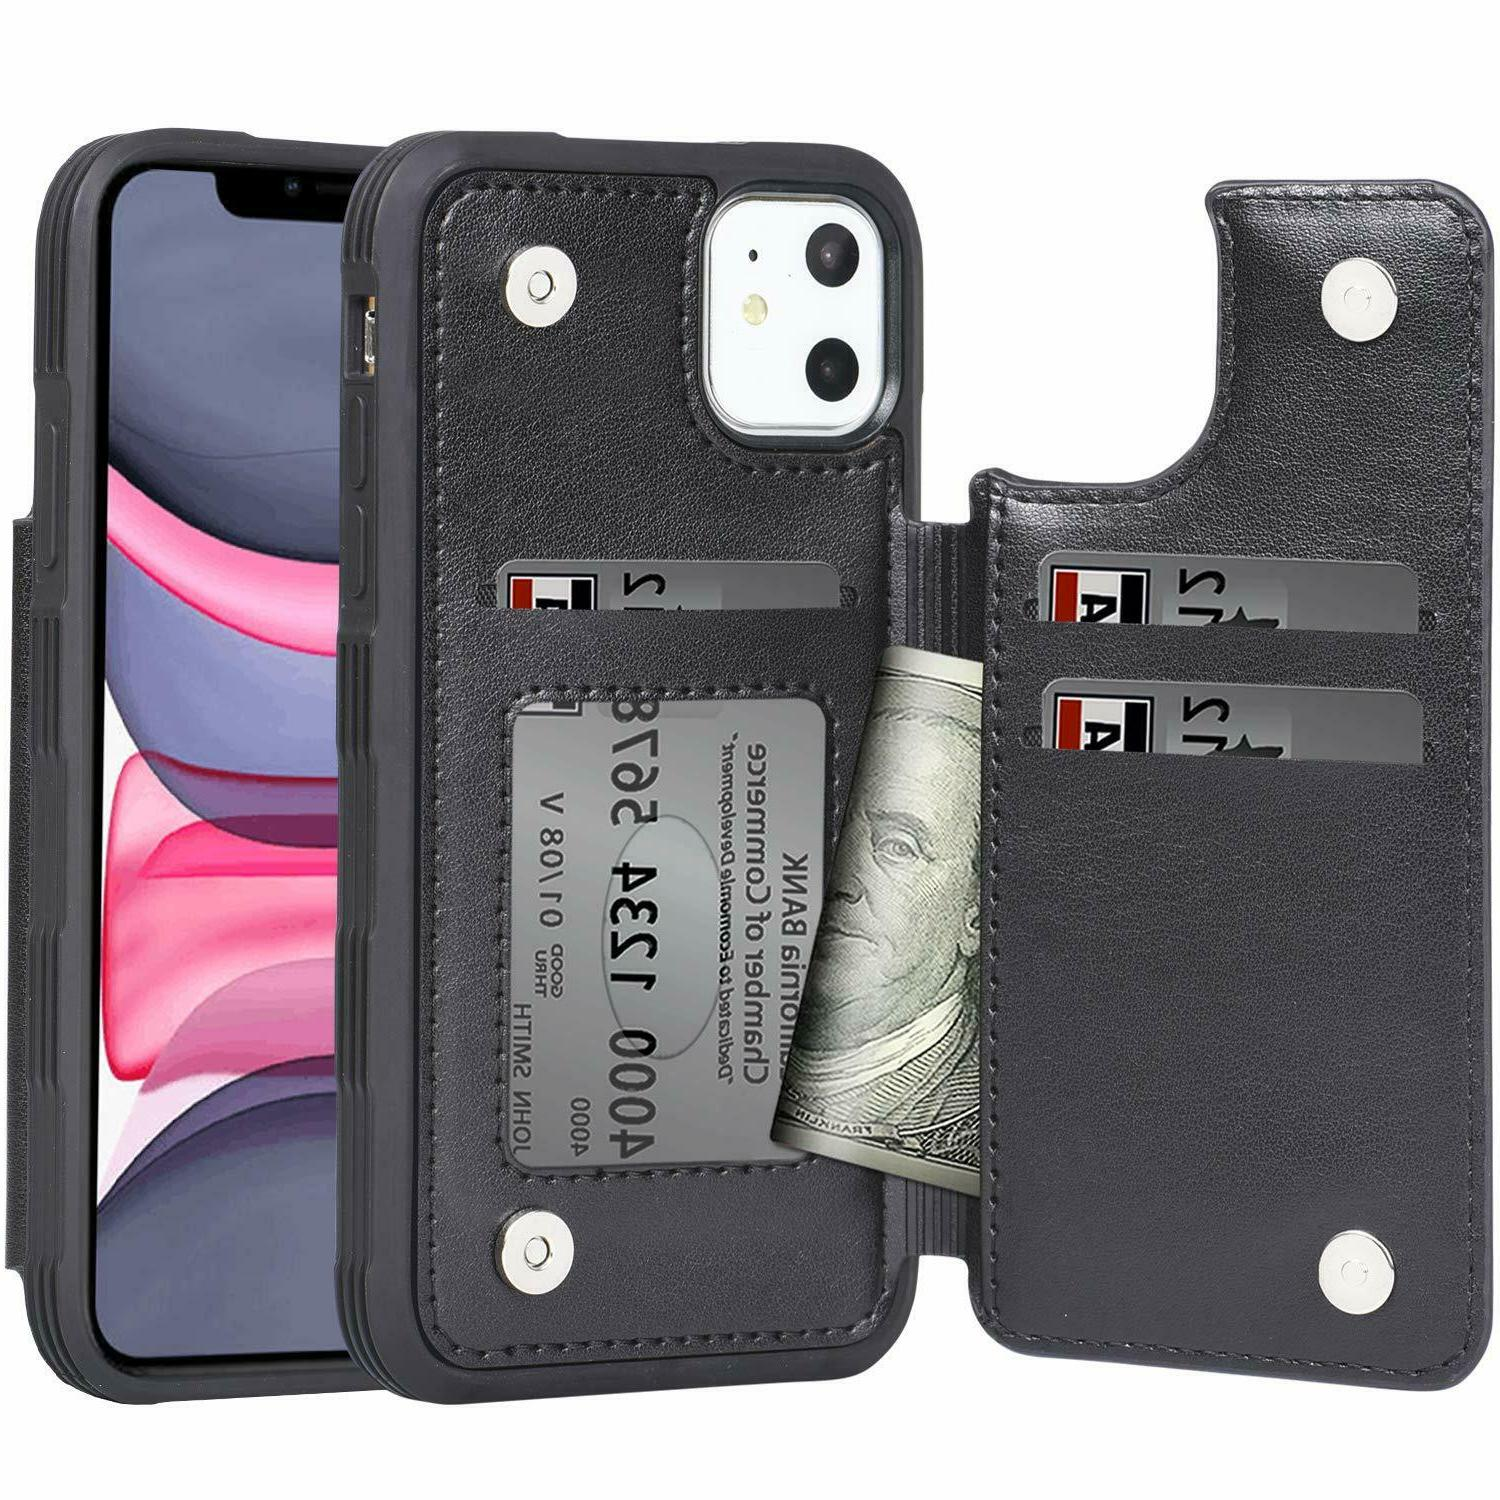 Holder For Apple iPhone 11 Pro Max 8